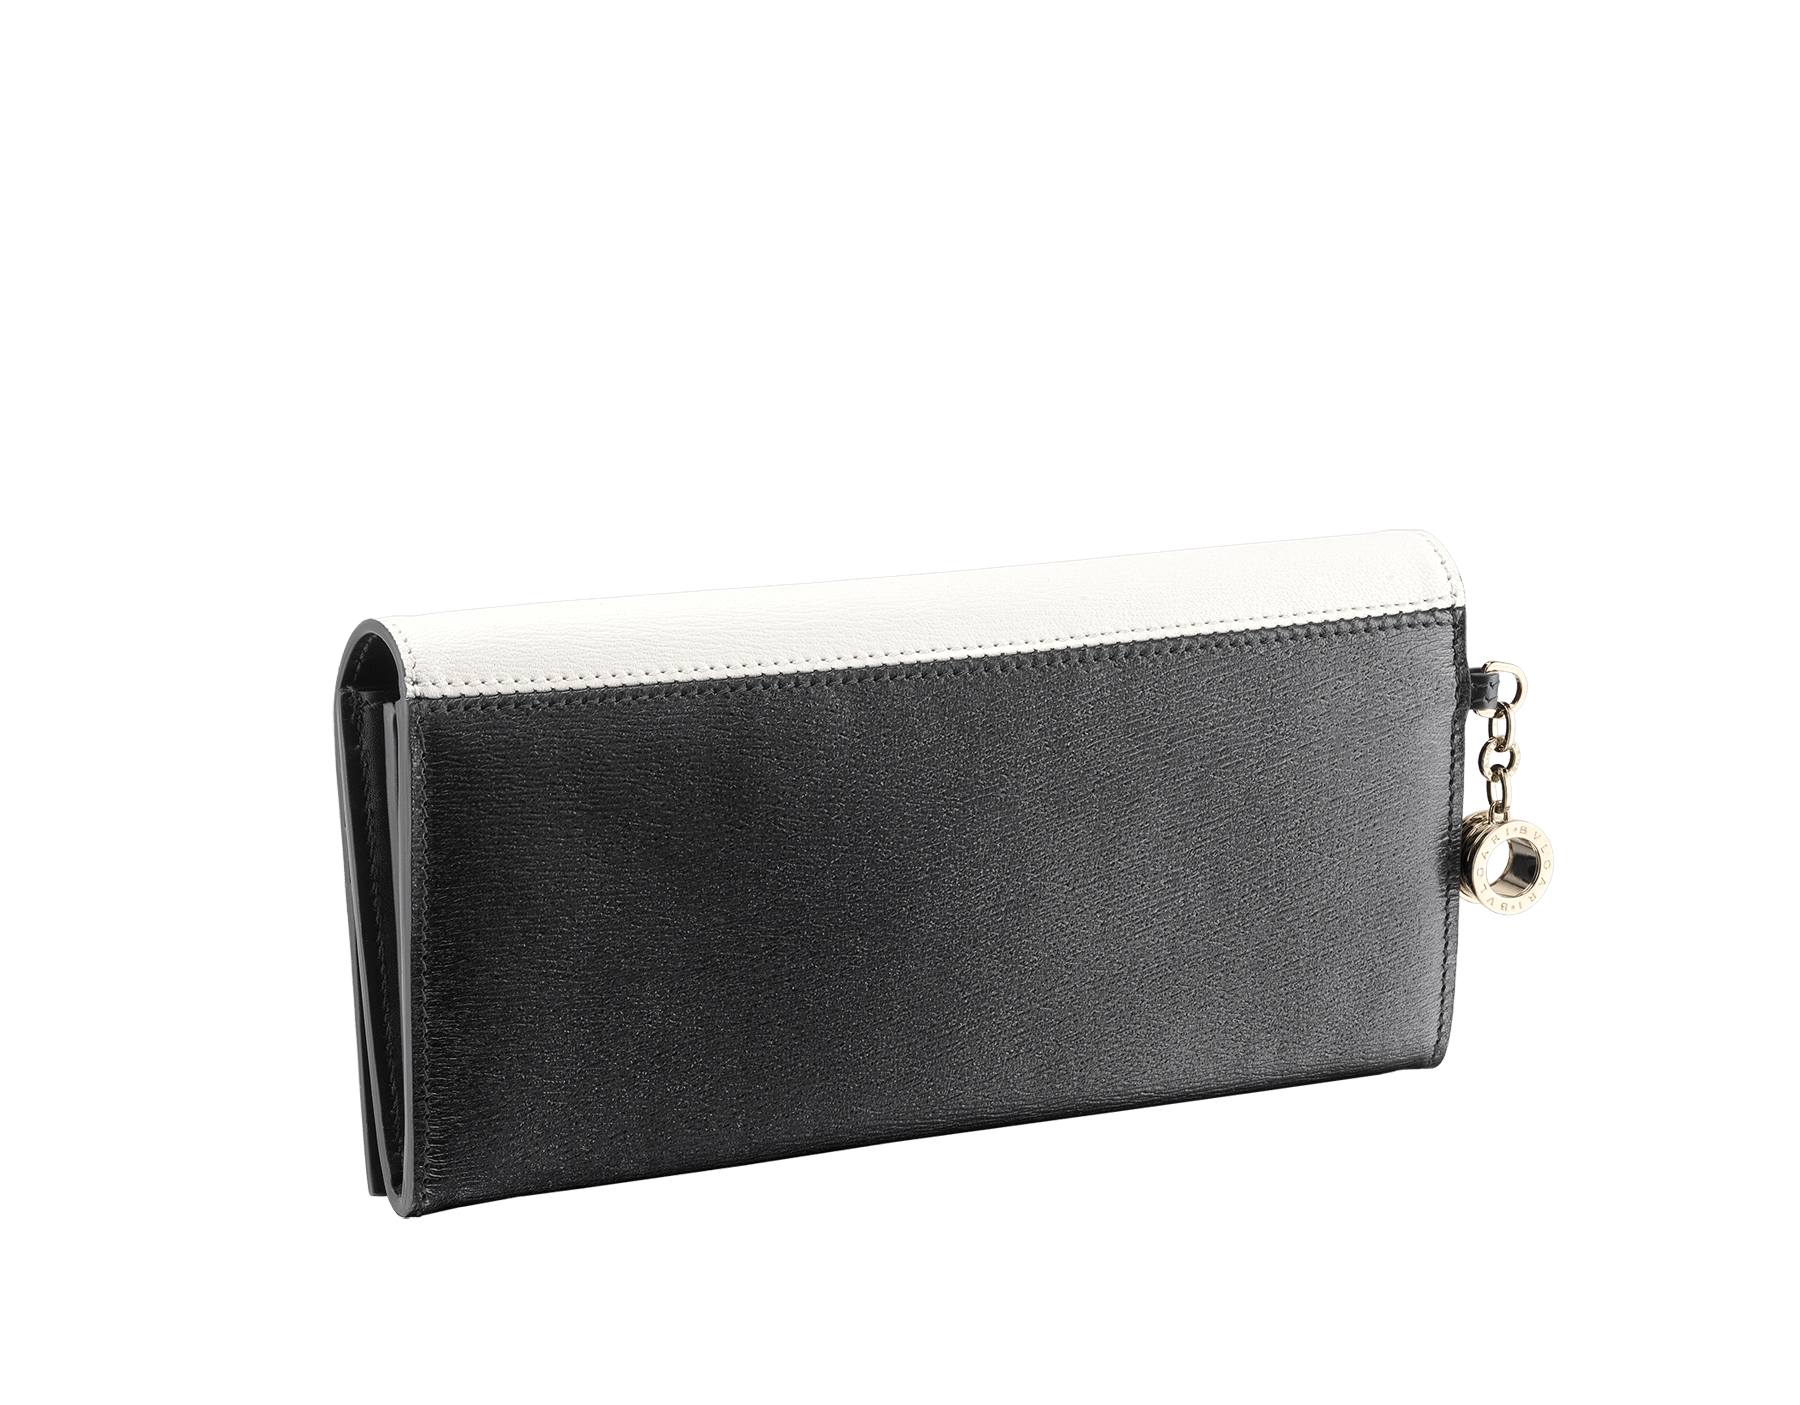 B.zero1 wallet pochette in white and black goatskin. Iconic B.zero1 charm in light gold plated brass and closure clip. 288231 image 5